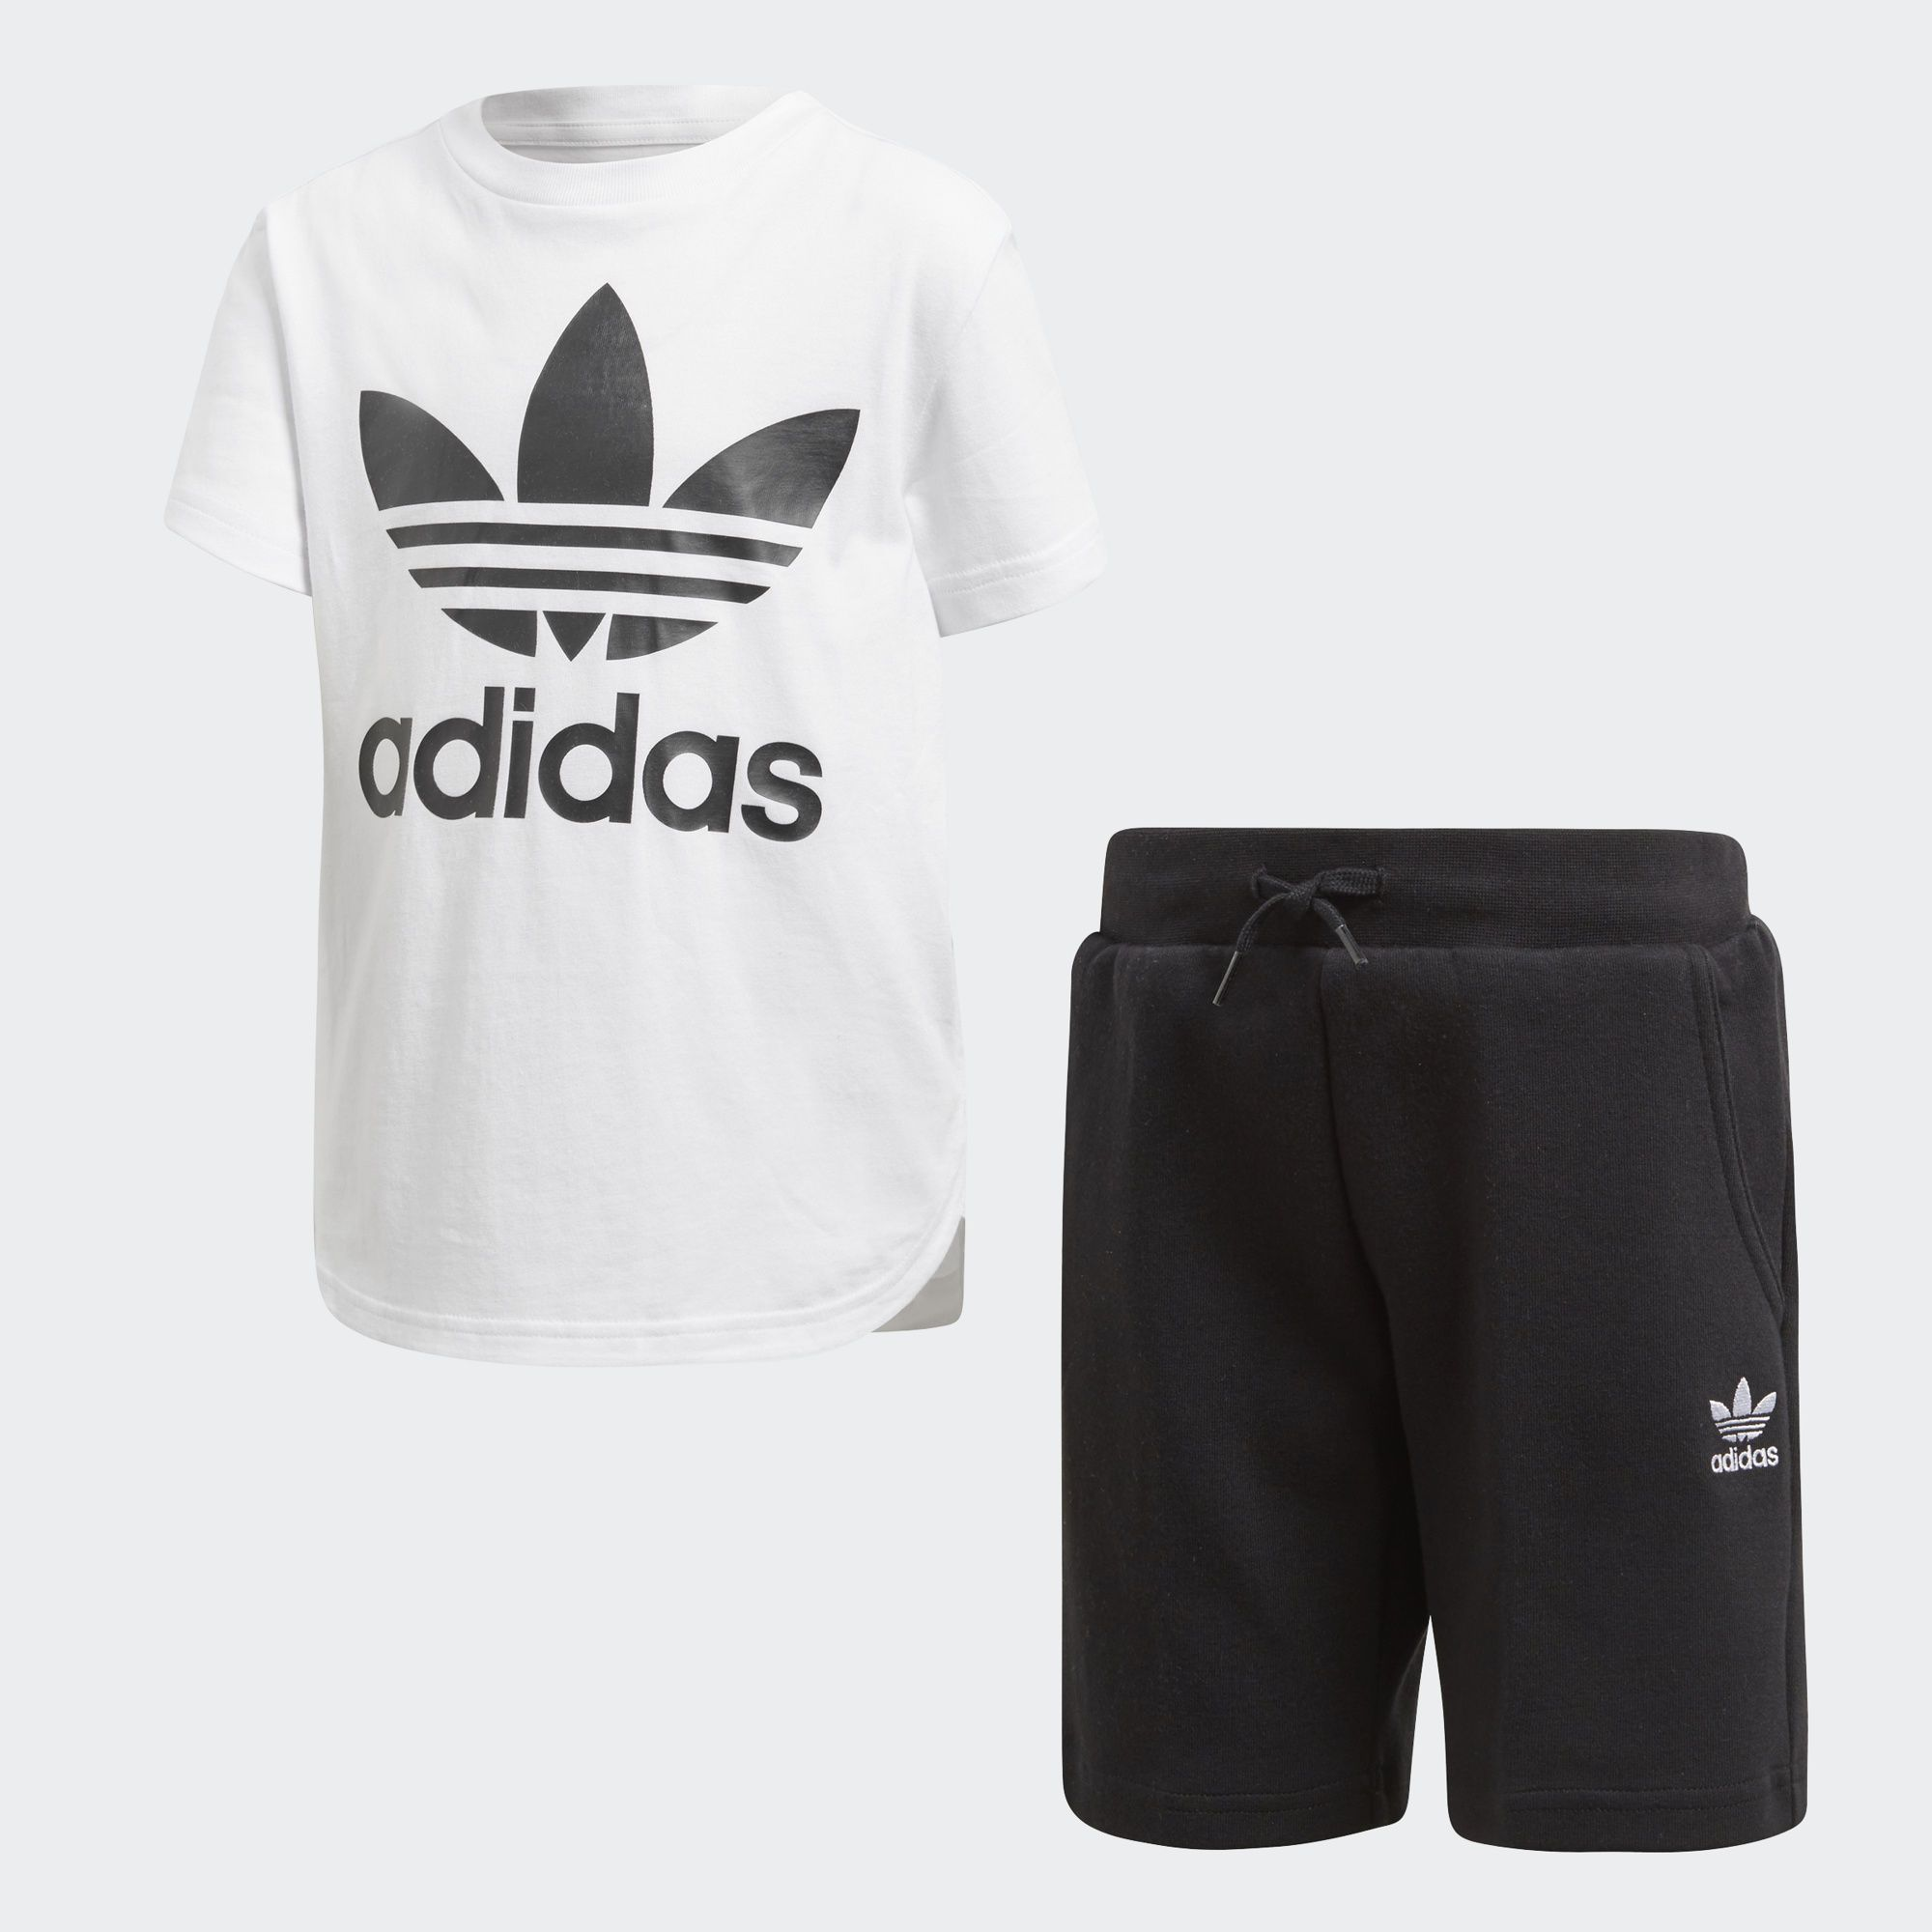 Capturing authentic adidas style in a boys' casual two piece